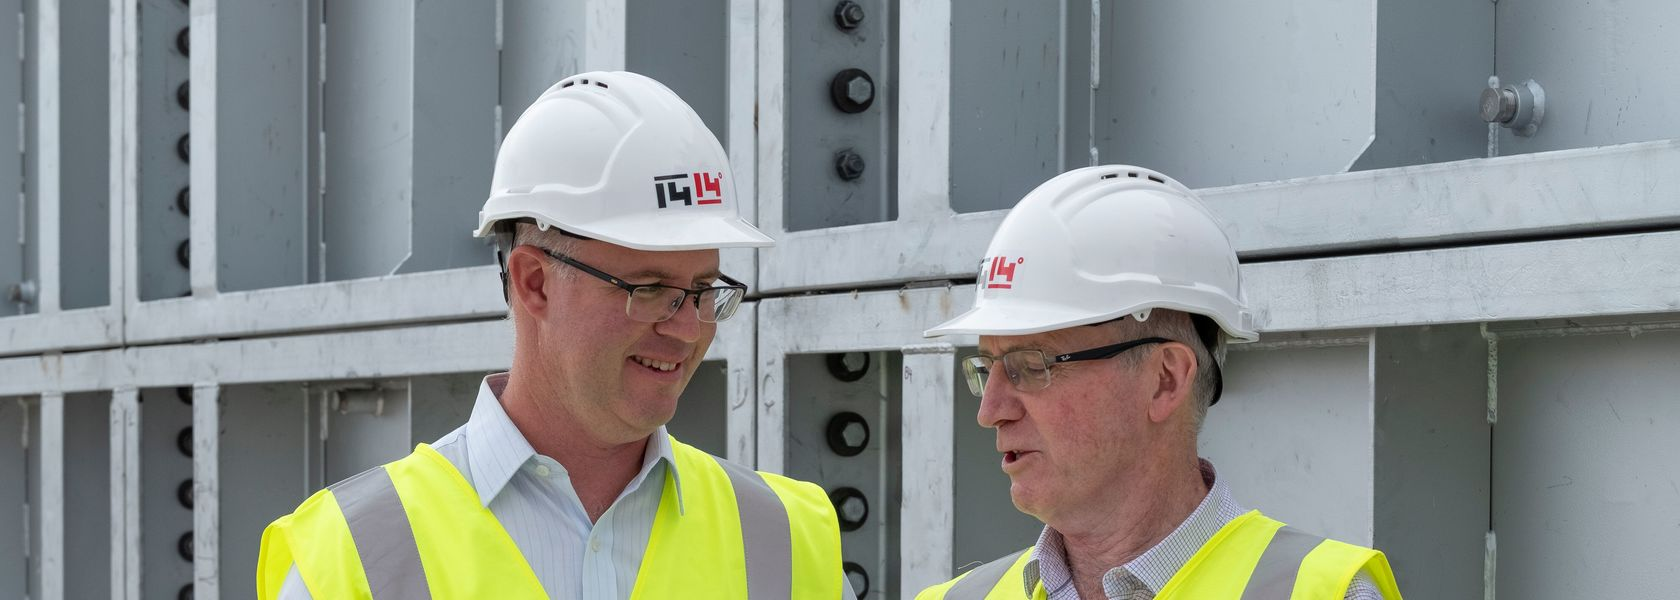 1414 Degrees teams up with firms on greenhouse thermal energy project